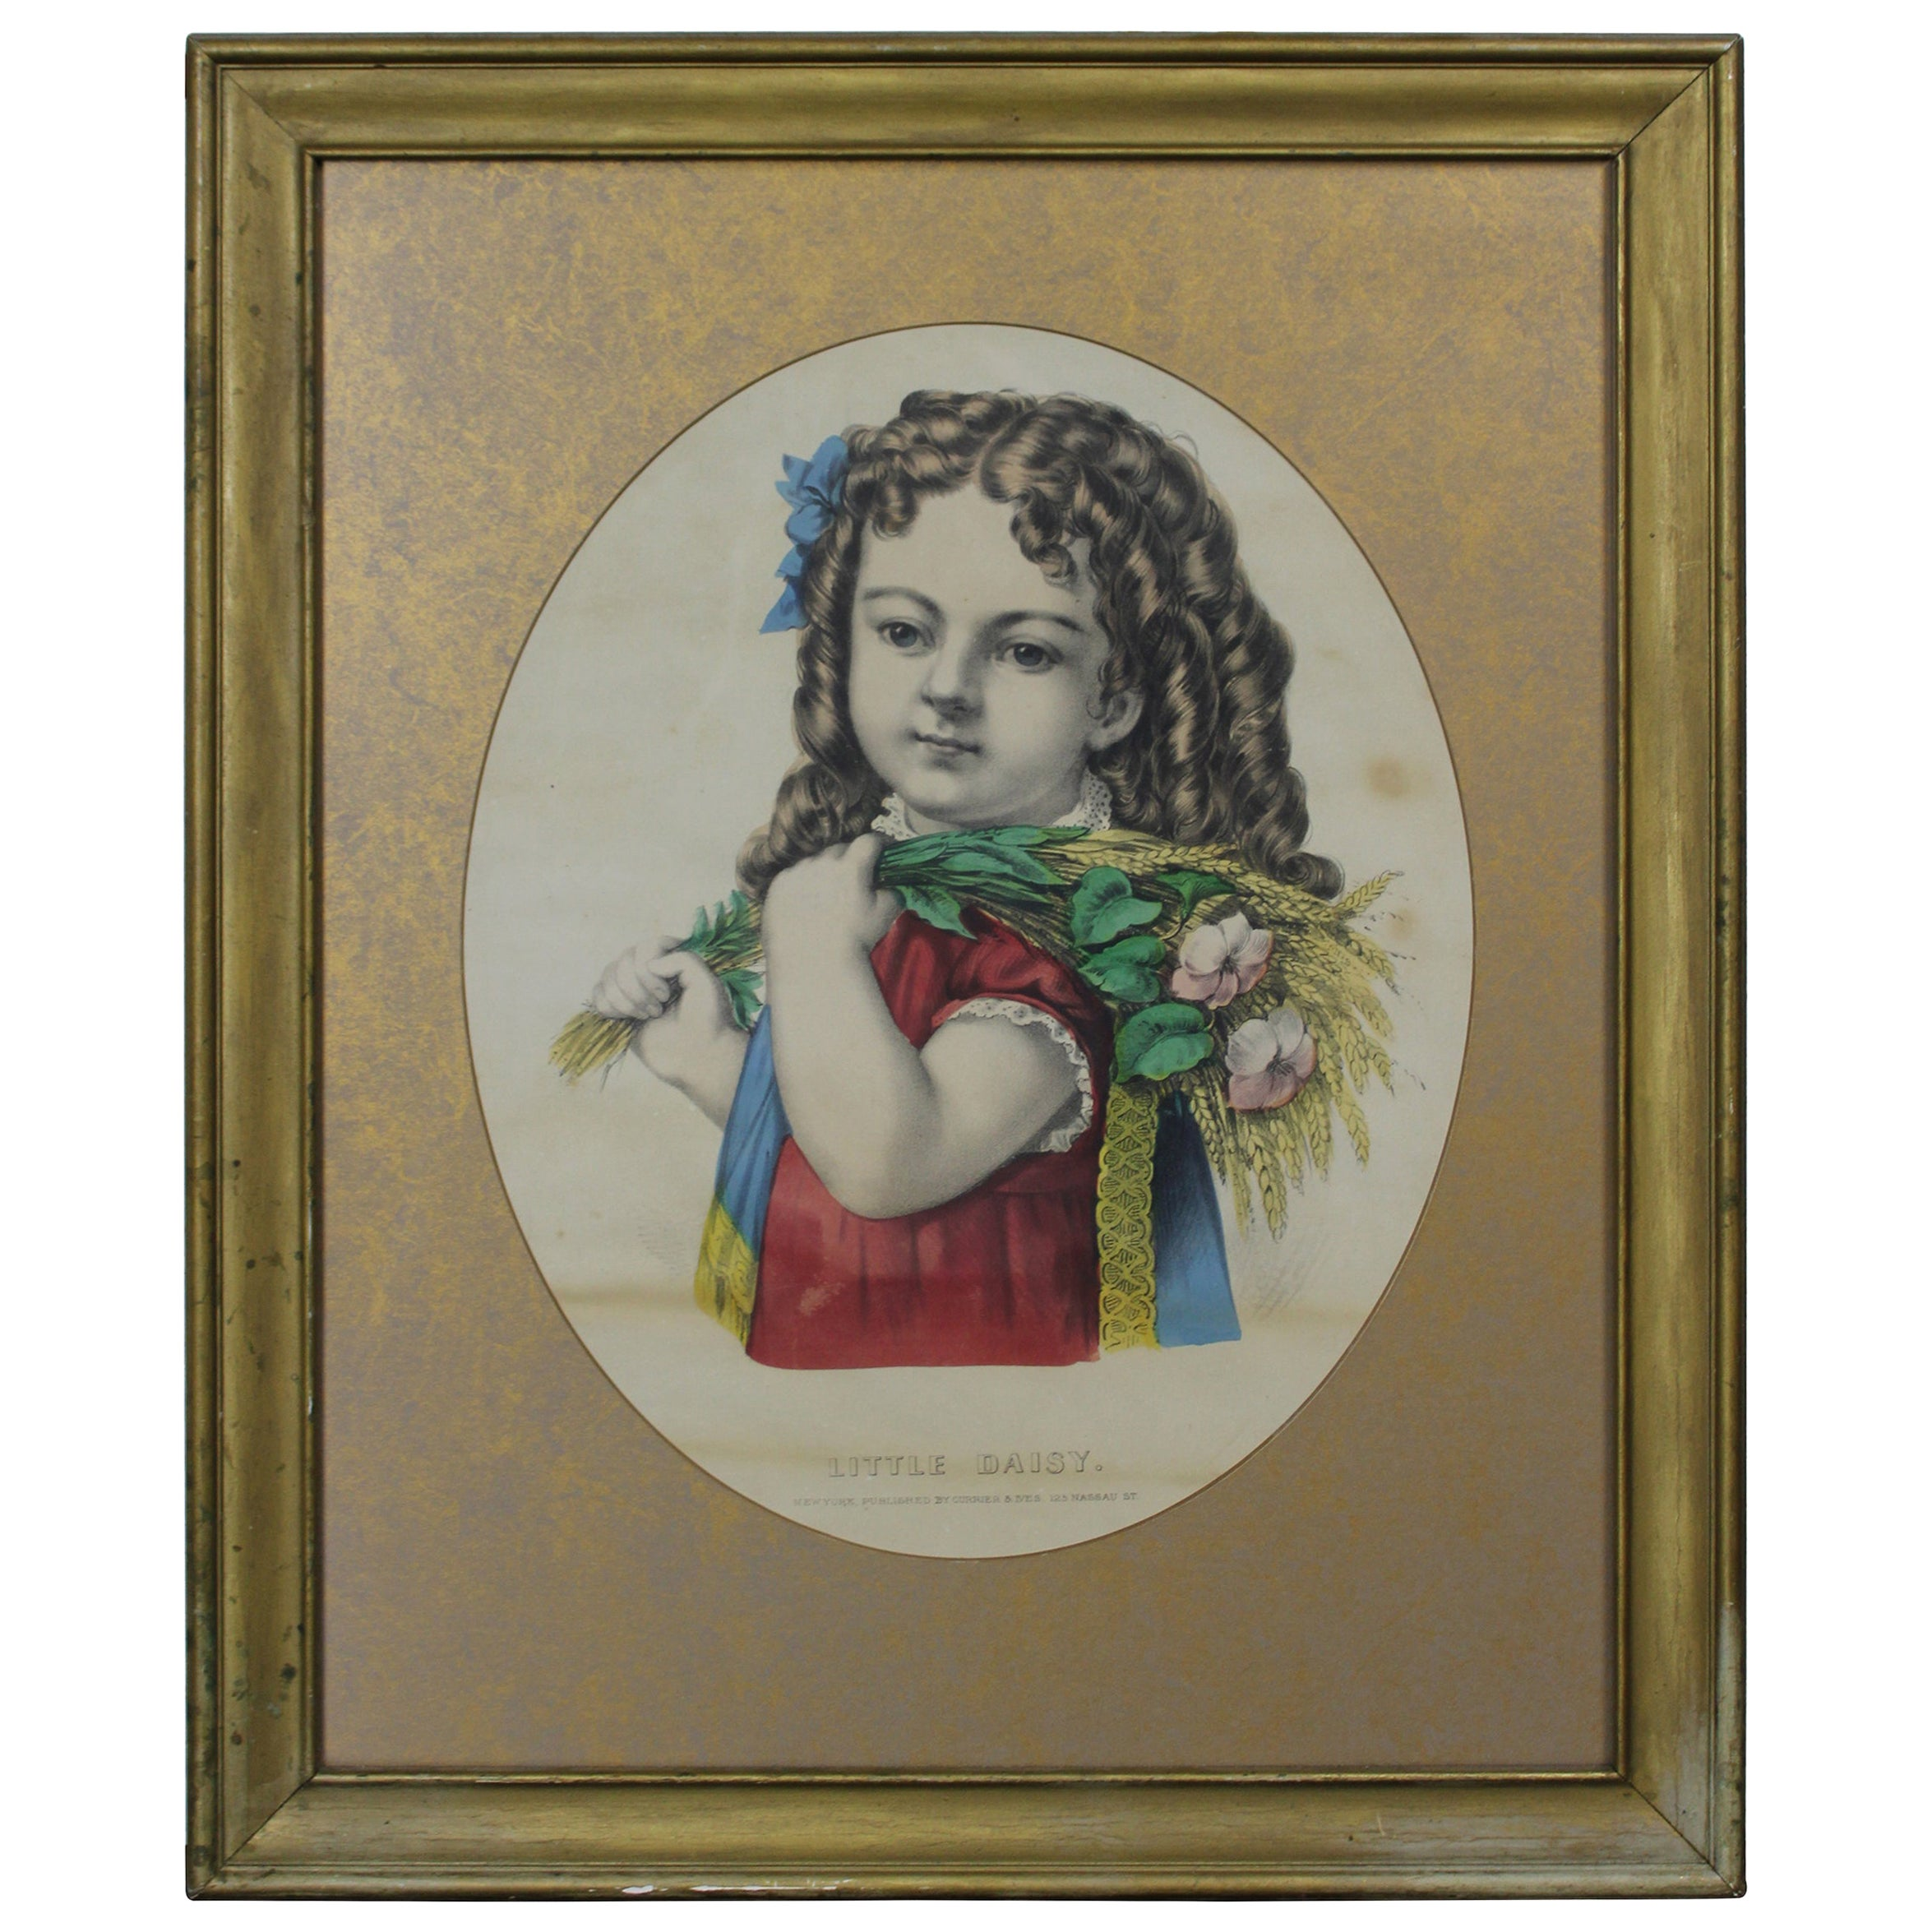 Antique Currier & Ives Little Daisy Lithograph Victorian Girl Flowers Gold